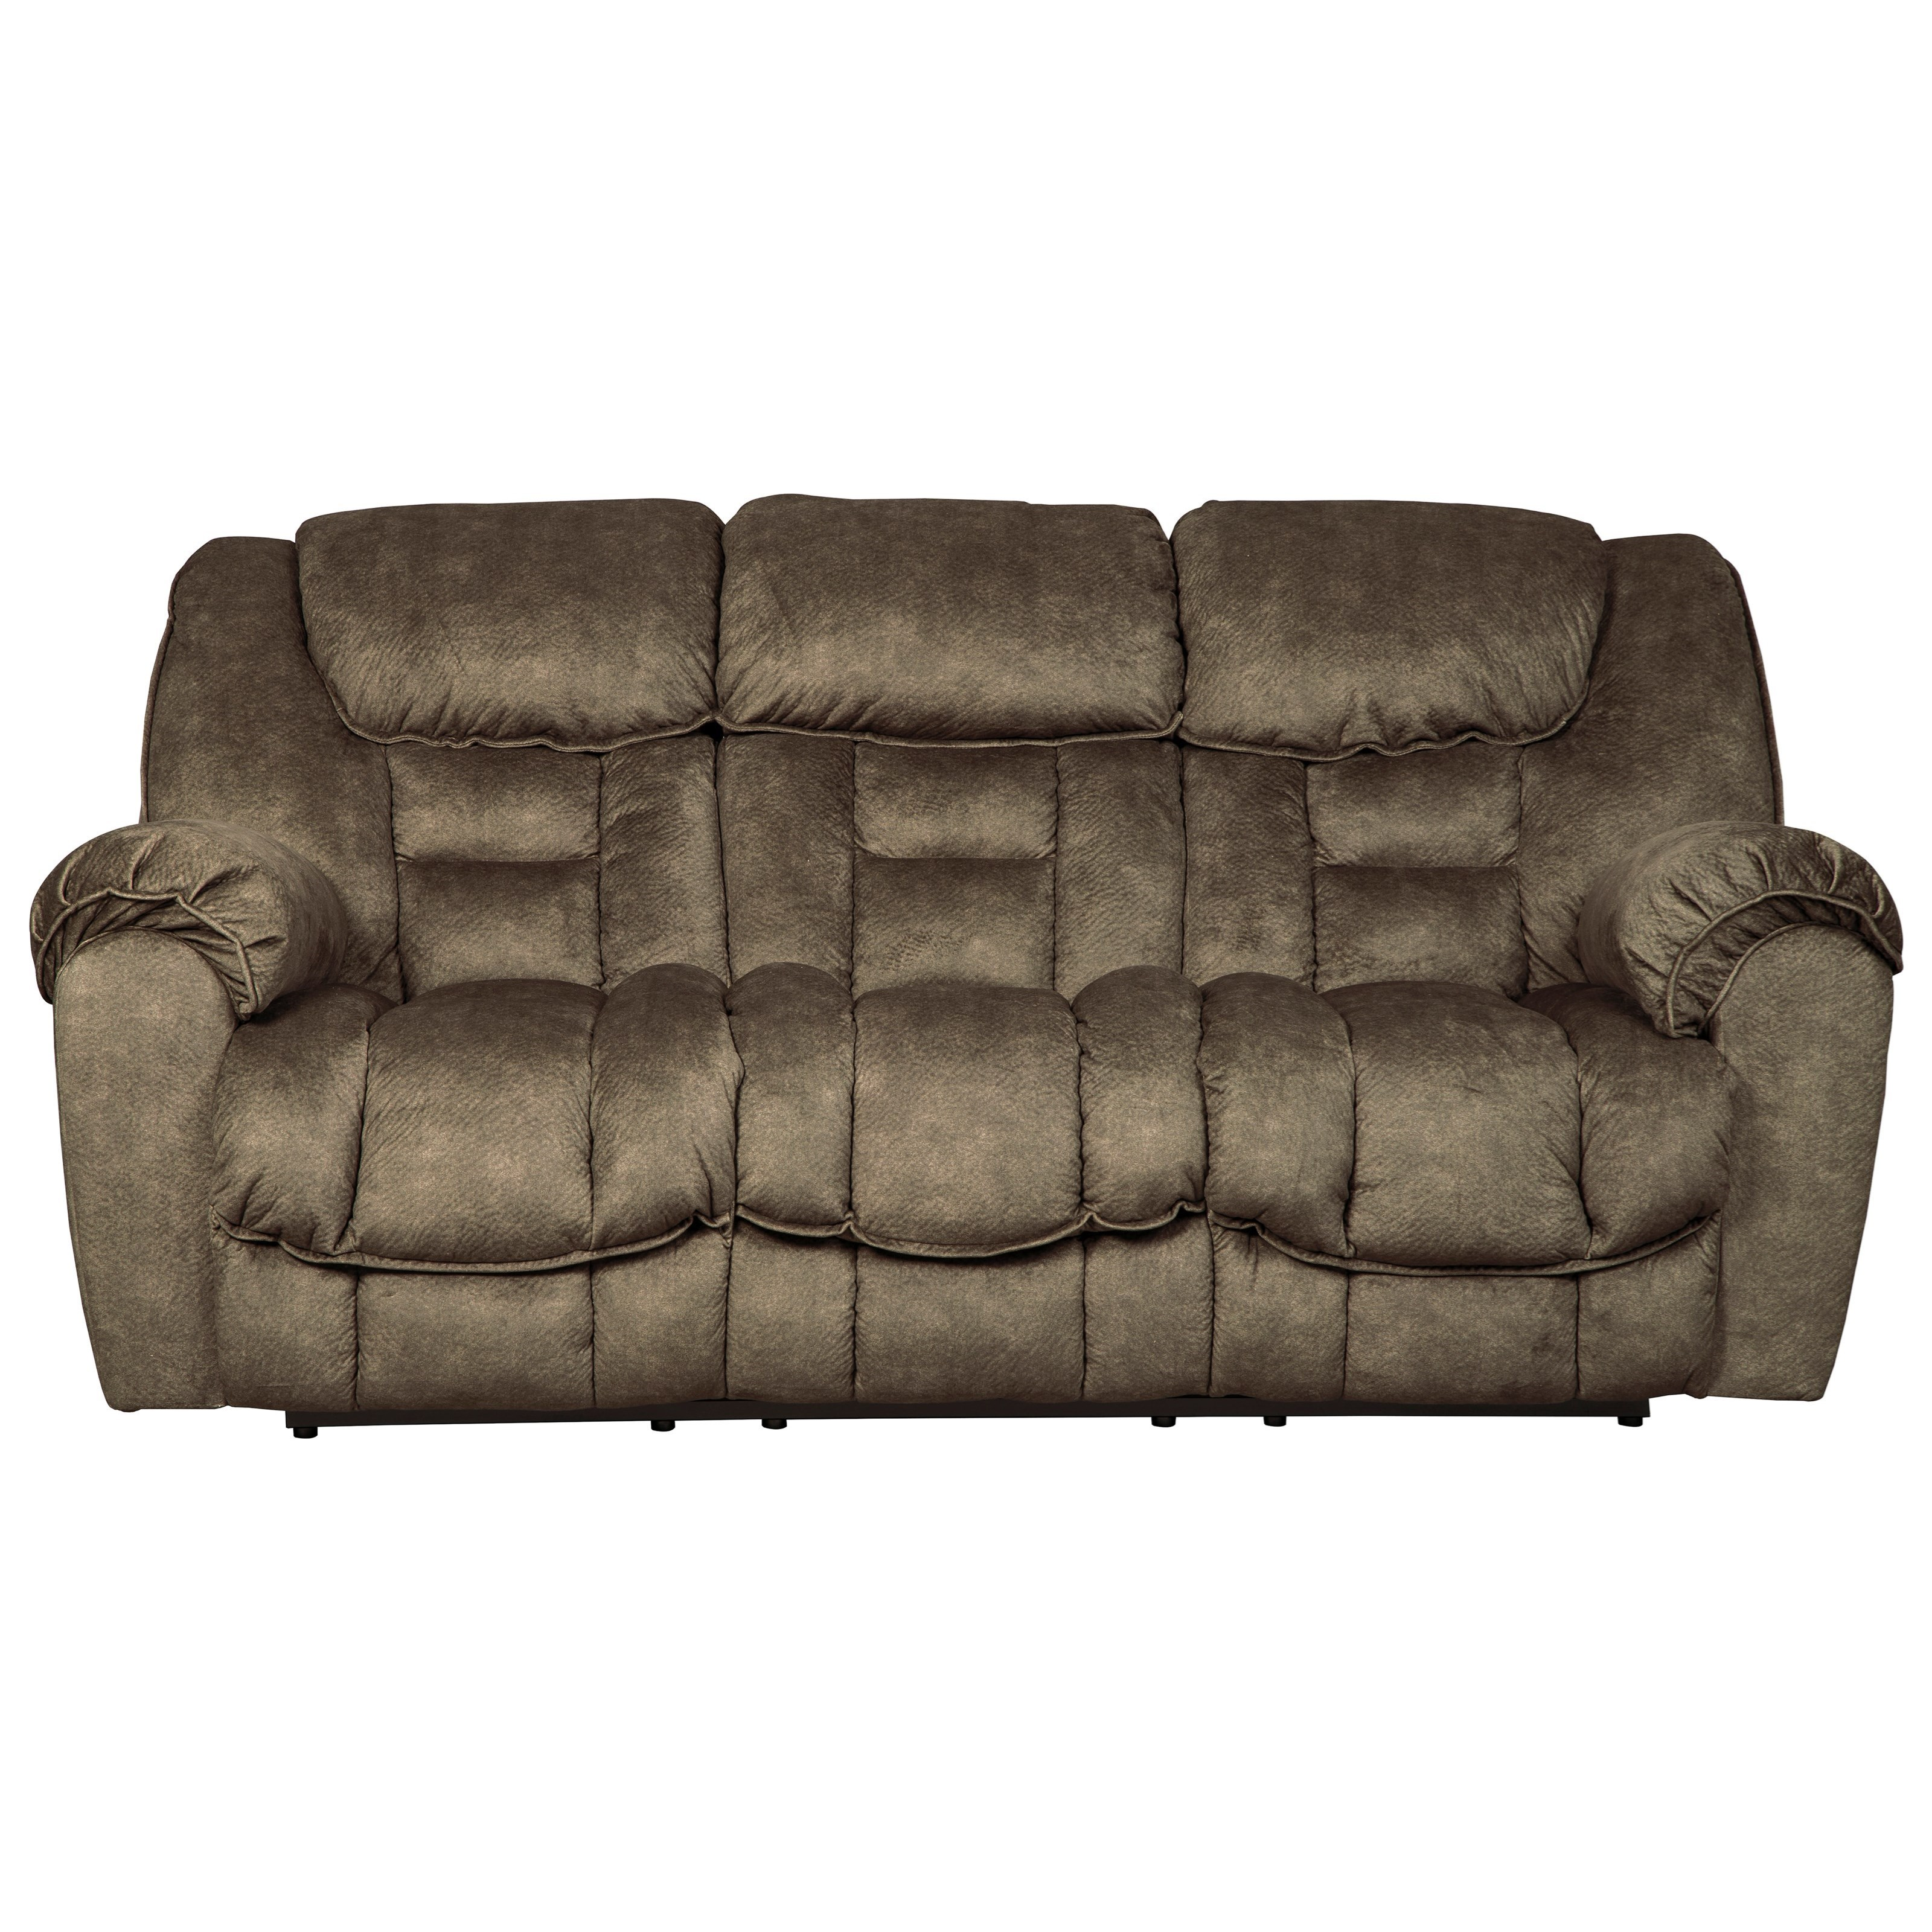 Benchcraft capehorn casual contemporary reclining sofa for Casual couch